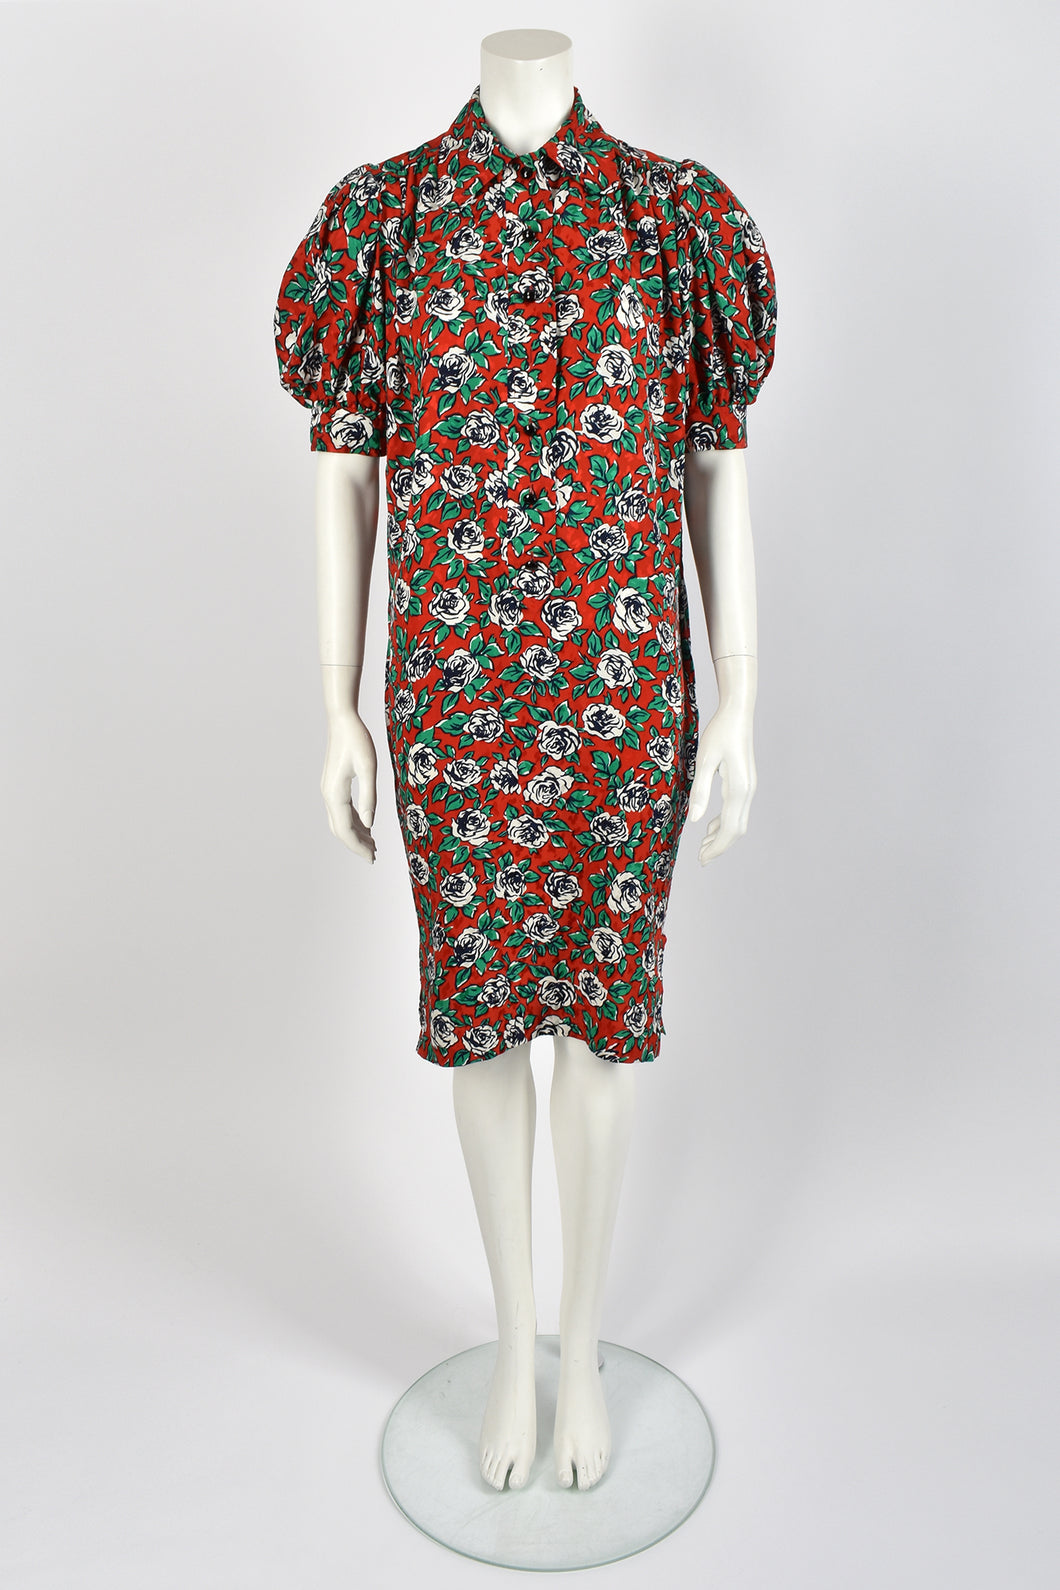 YVES SAINT LAURENT silk floral dress / L